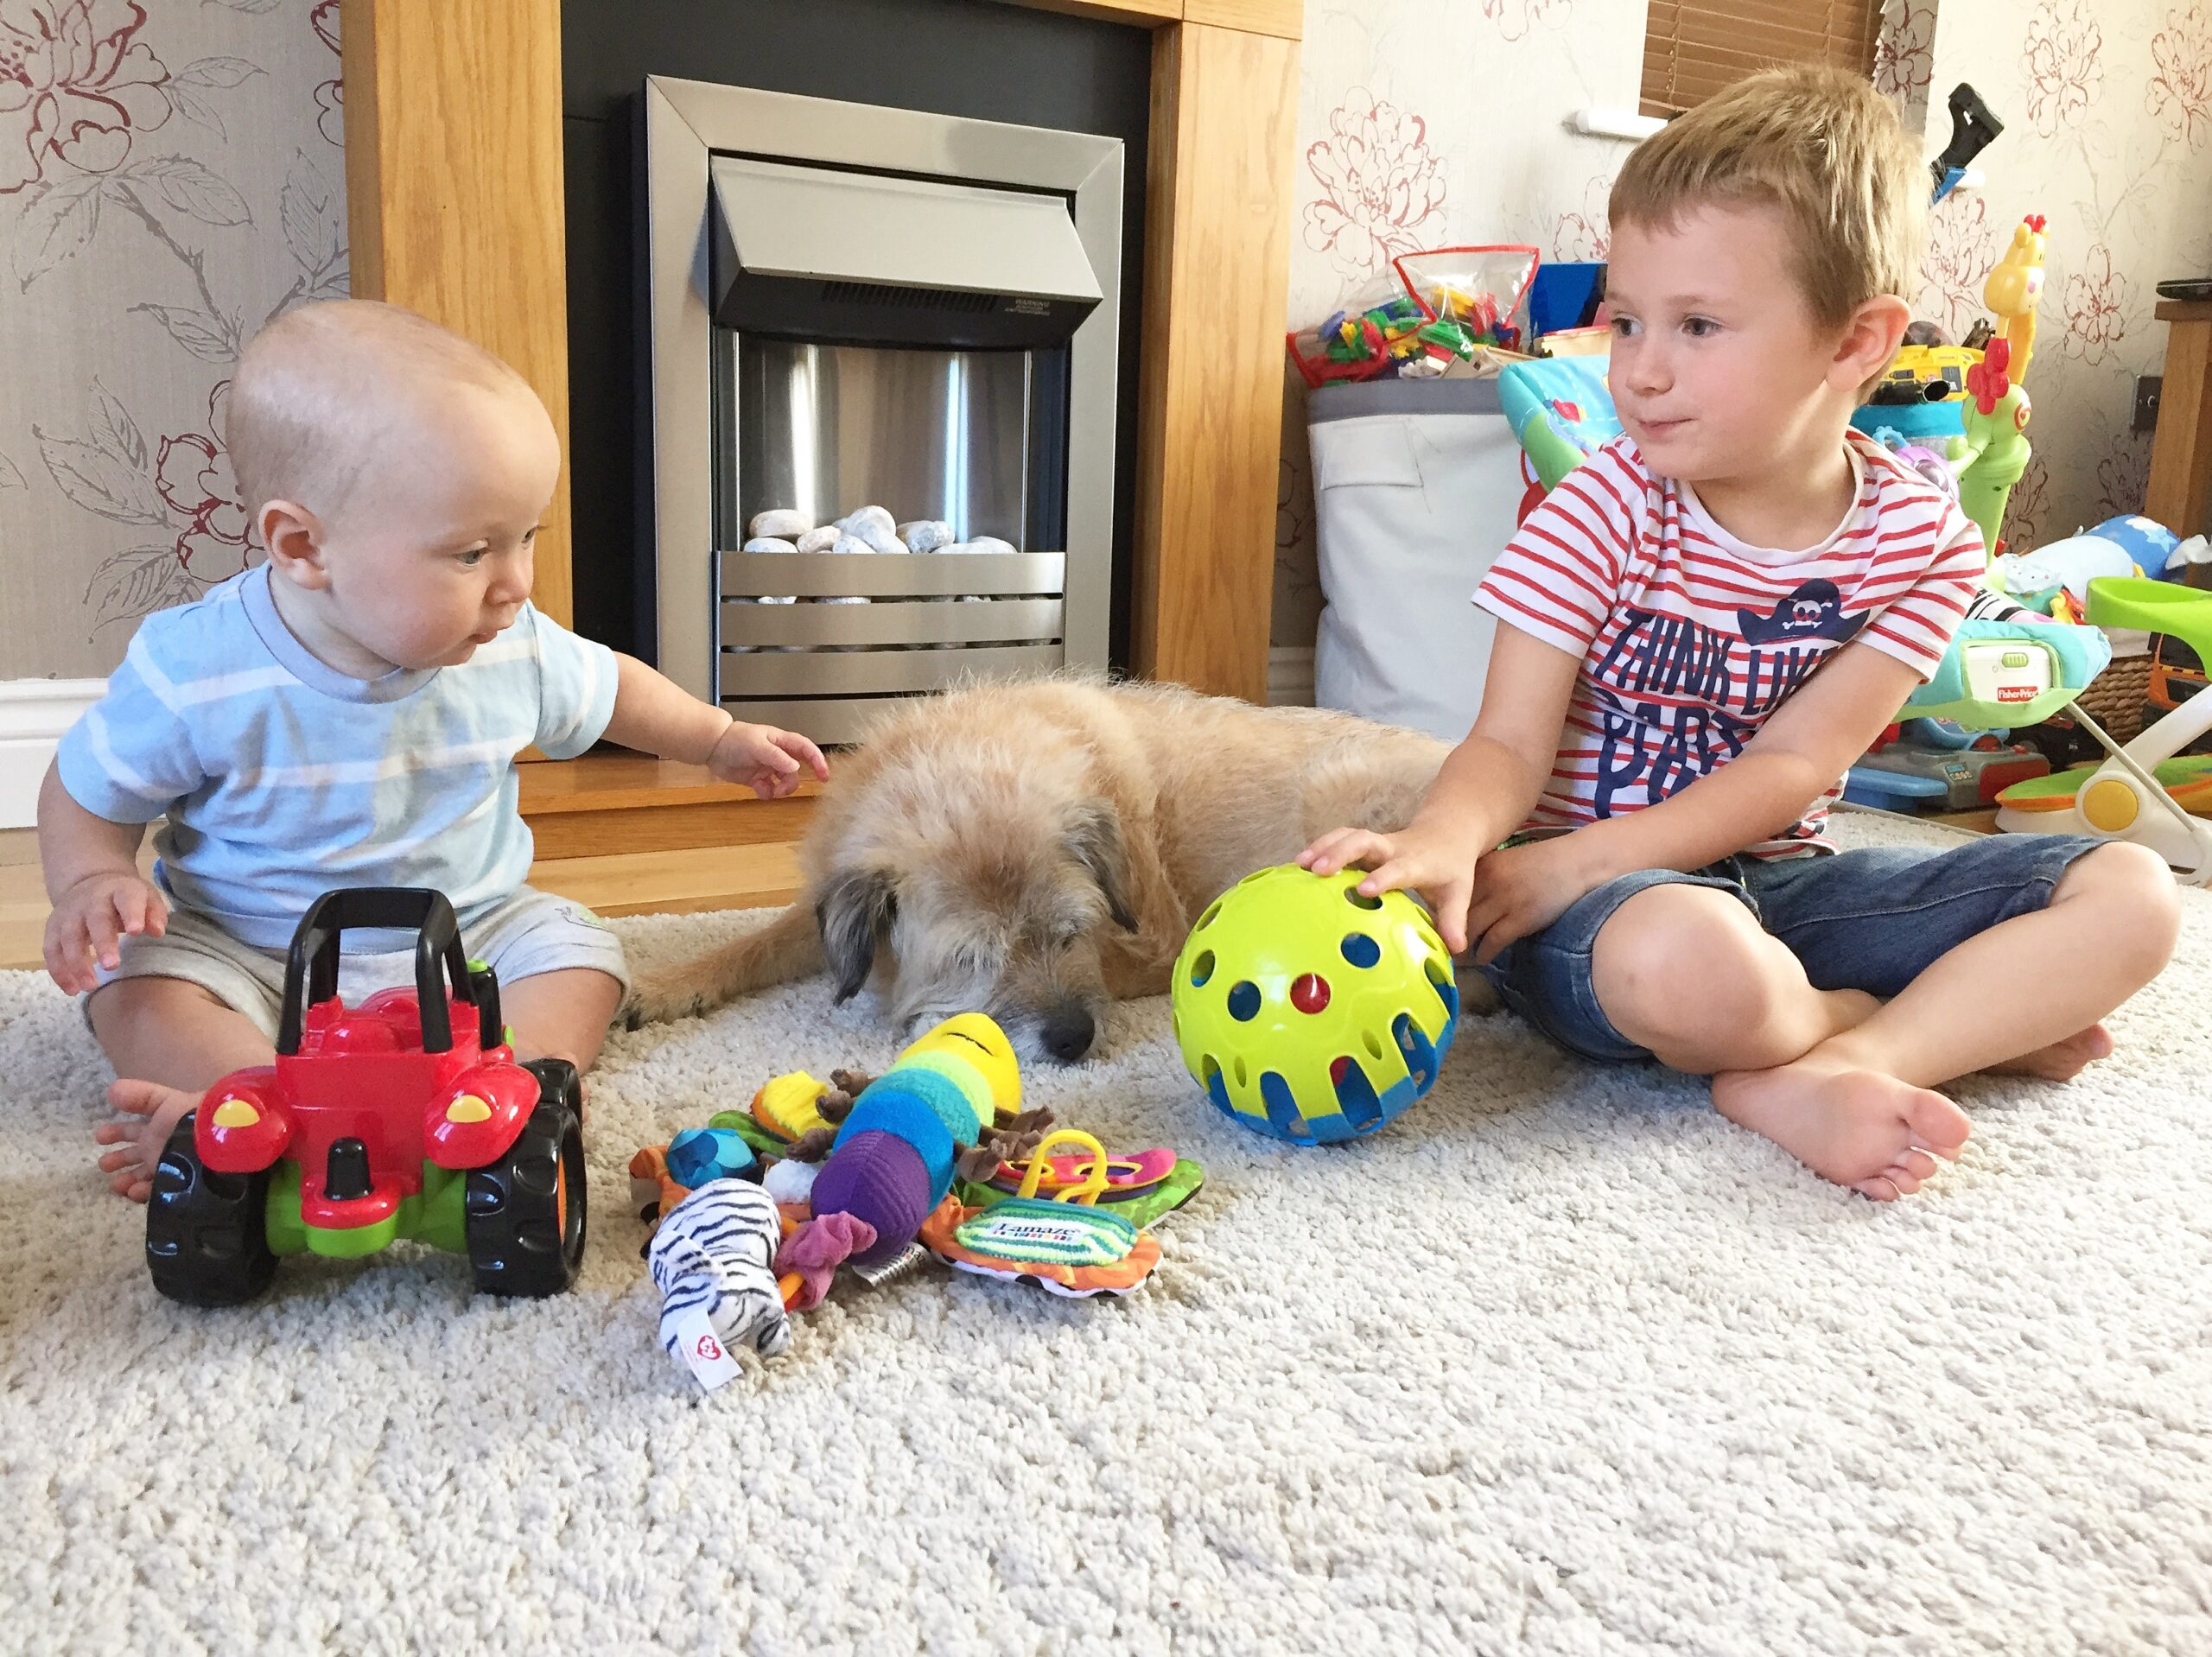 2 boys and a dog in a living room playing with toys